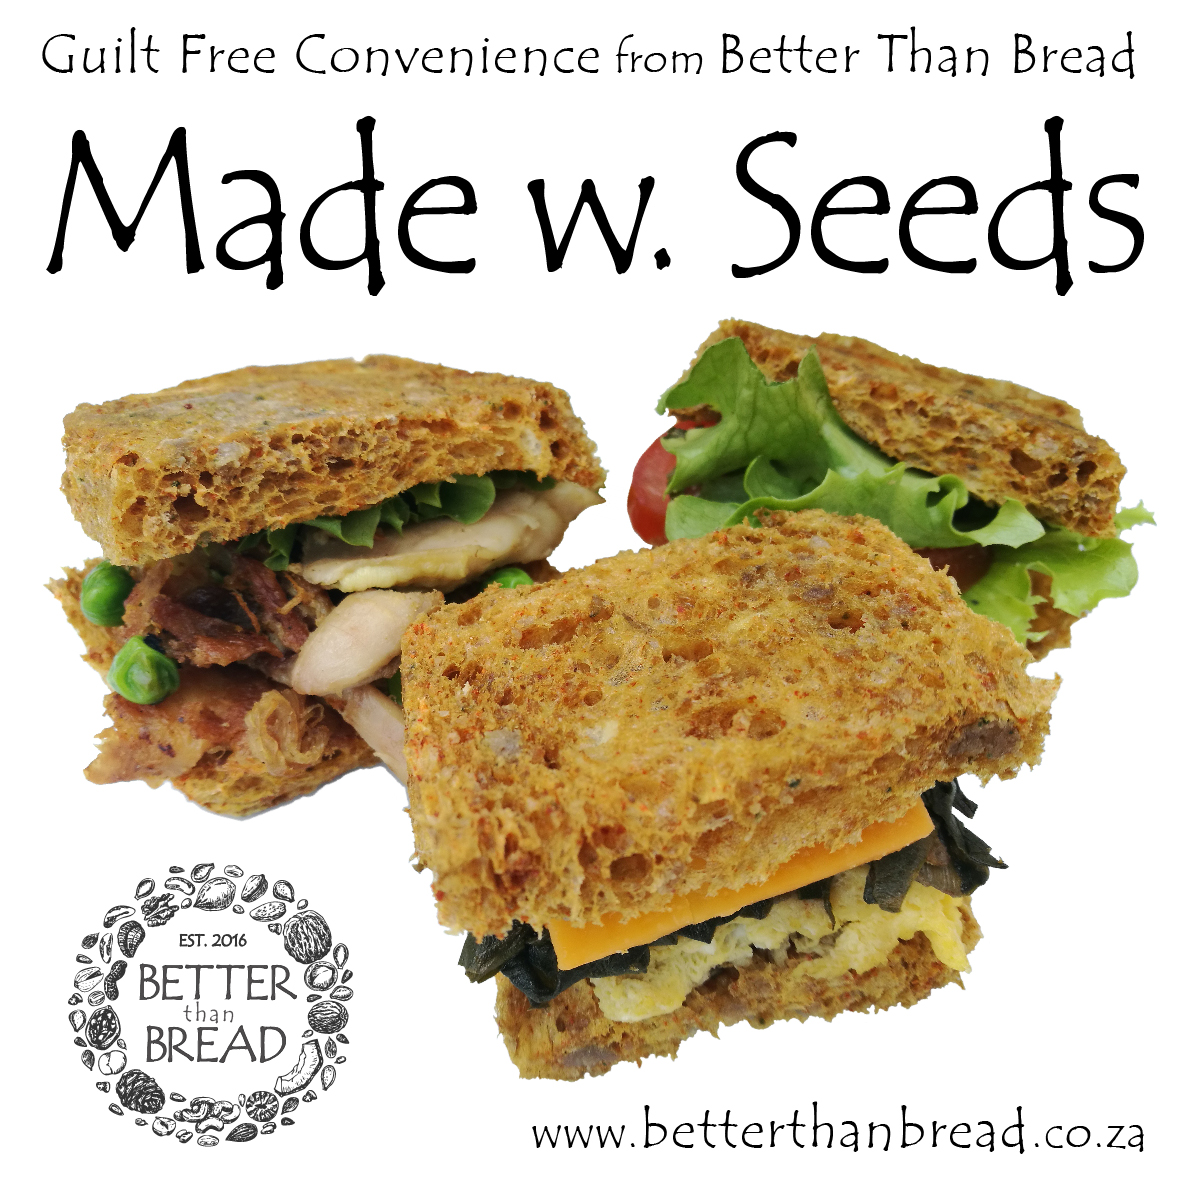 Great quality, delicious & healthy